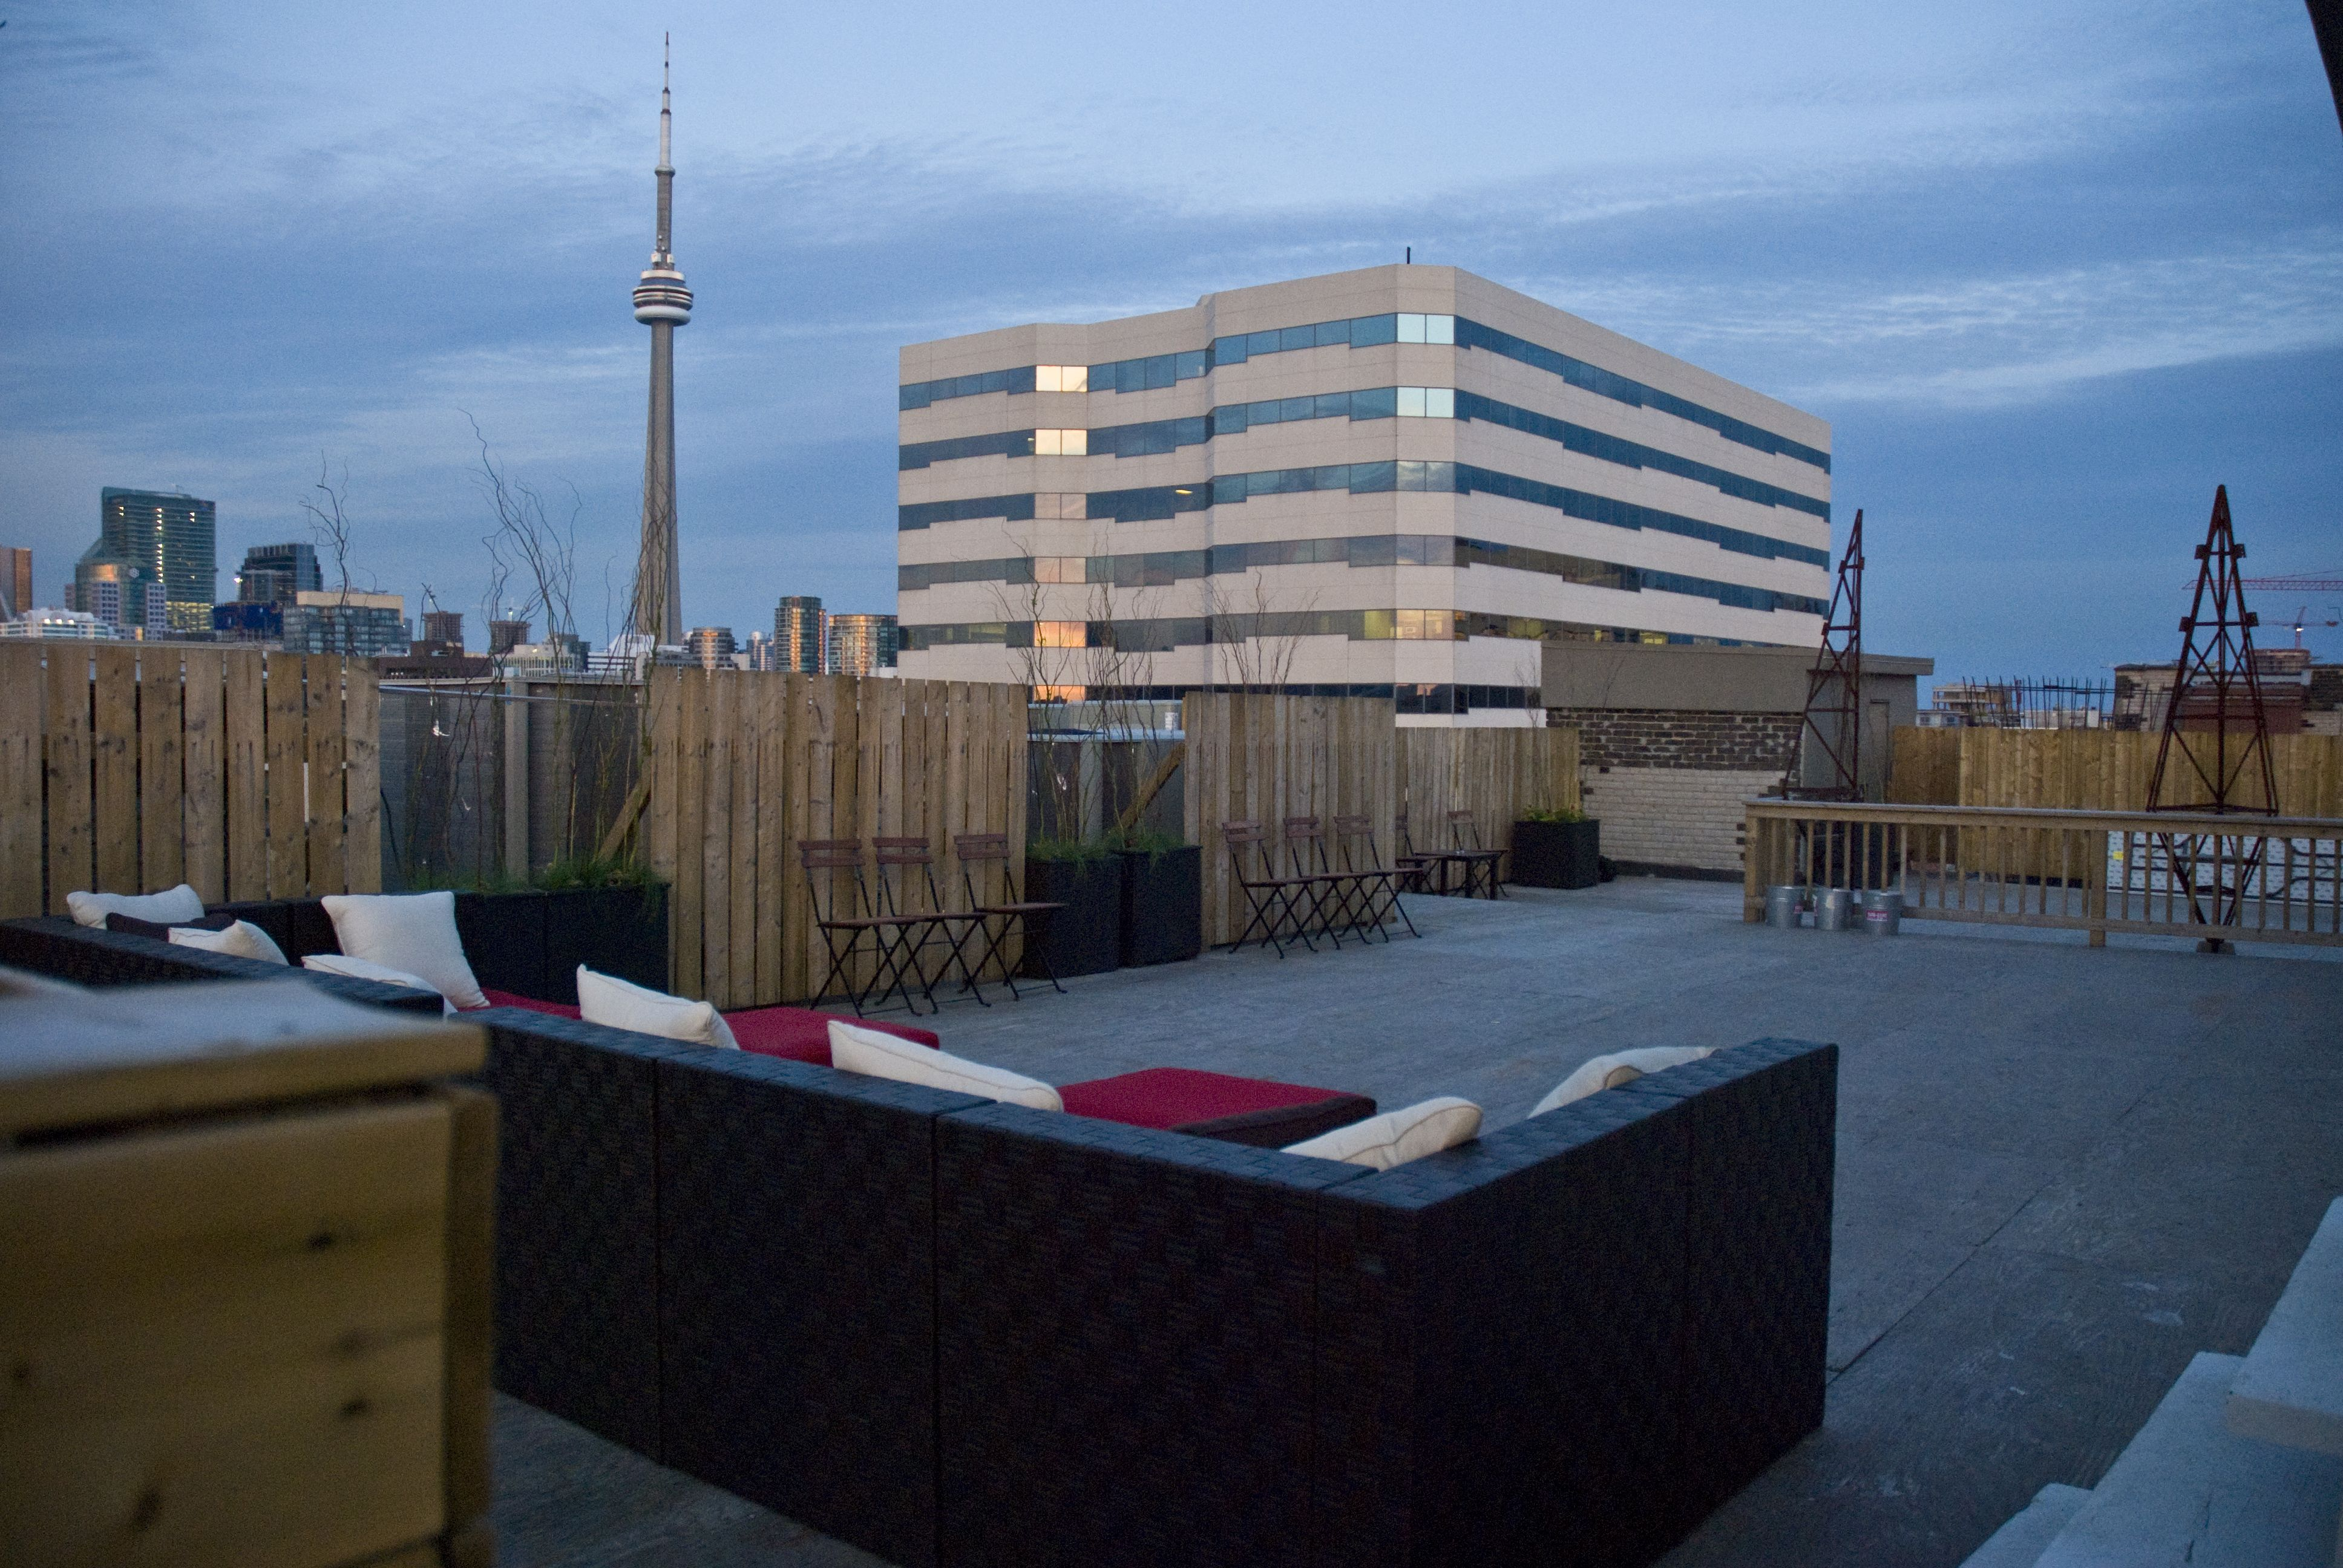 The Burroughes Rooftop Terrace | Rooftop Terrace | Pinterest ...